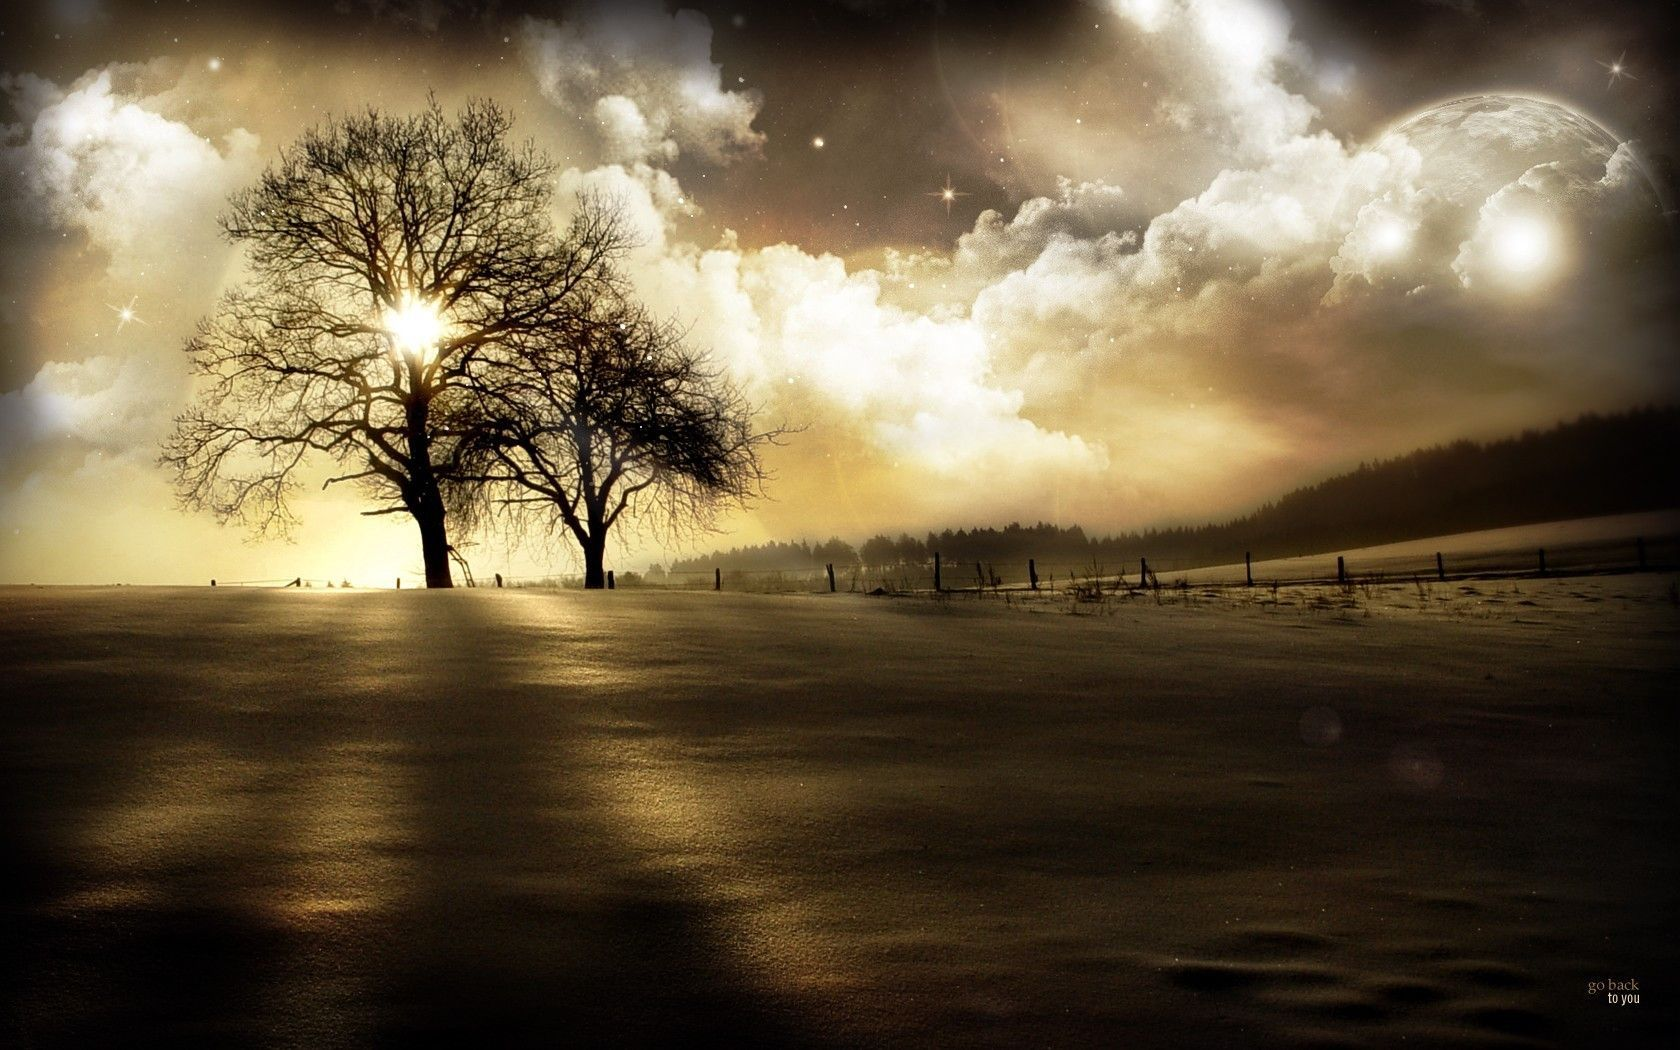 Cool backgrounds hd p wallpaper now hd wallpapers pinterest cool backgrounds hd p wallpaper now voltagebd Images